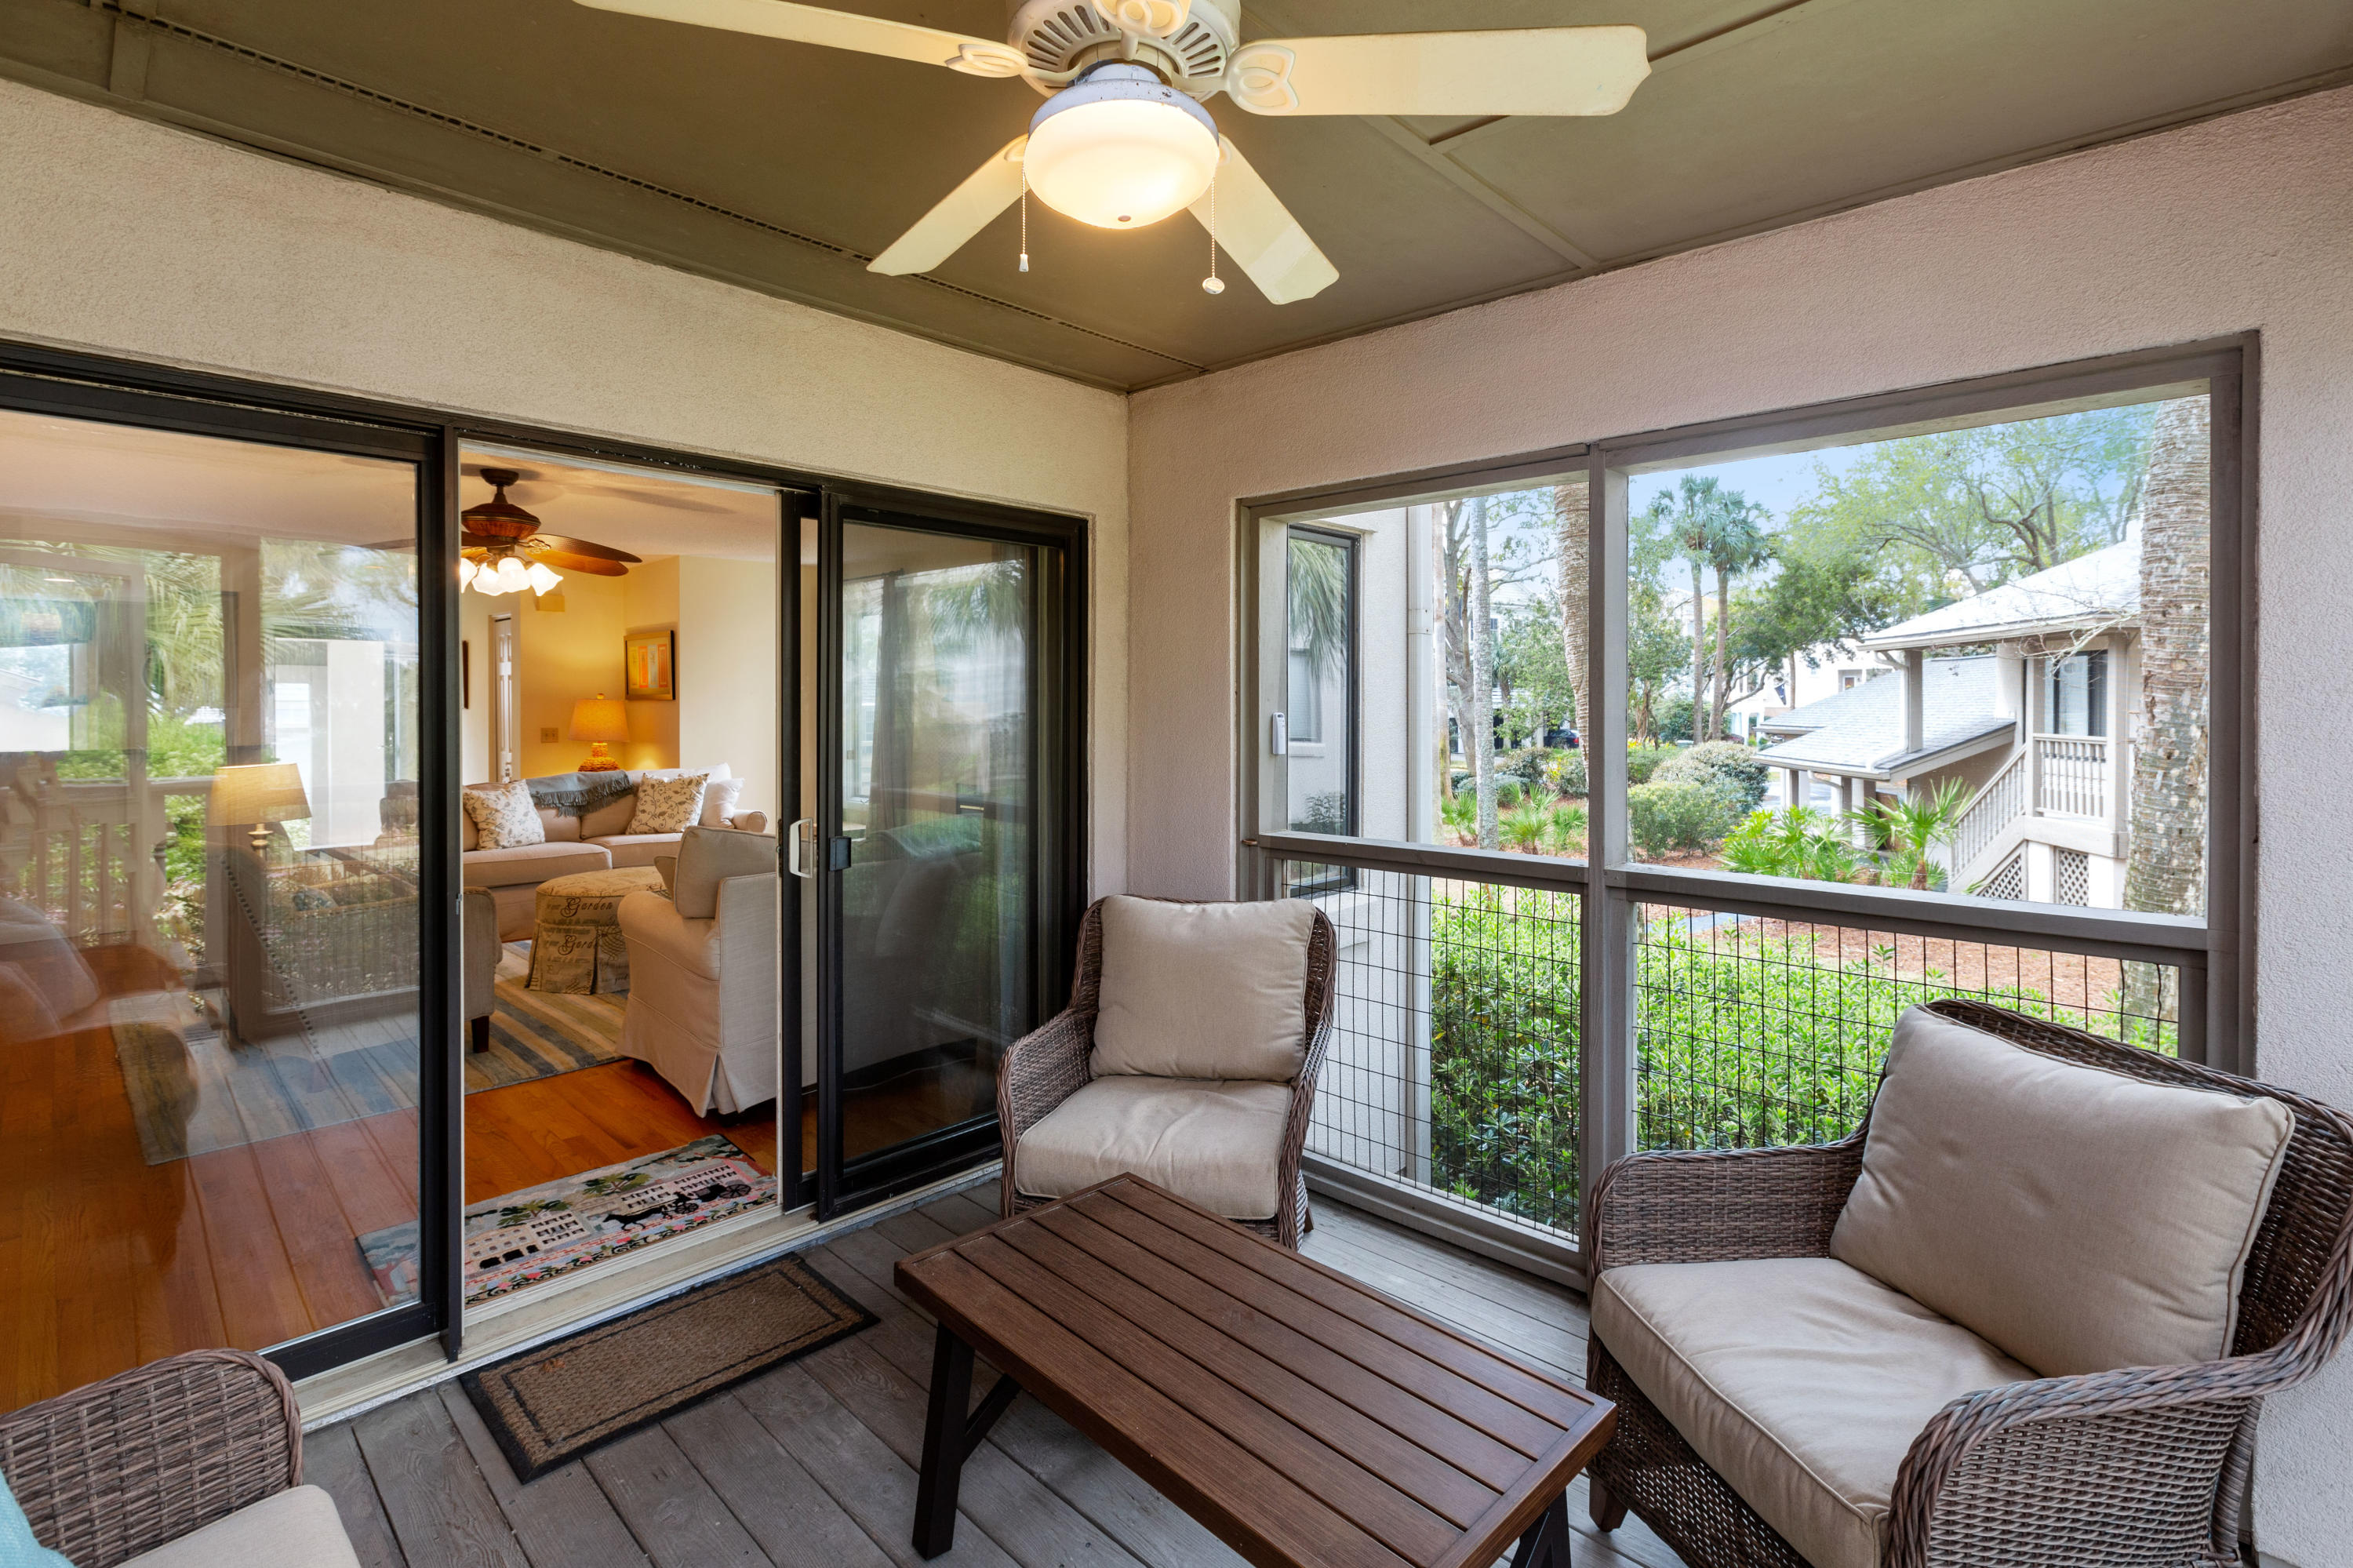 Wild Dunes Homes For Sale - 401 Yacht Harbor, Isle of Palms, SC - 0